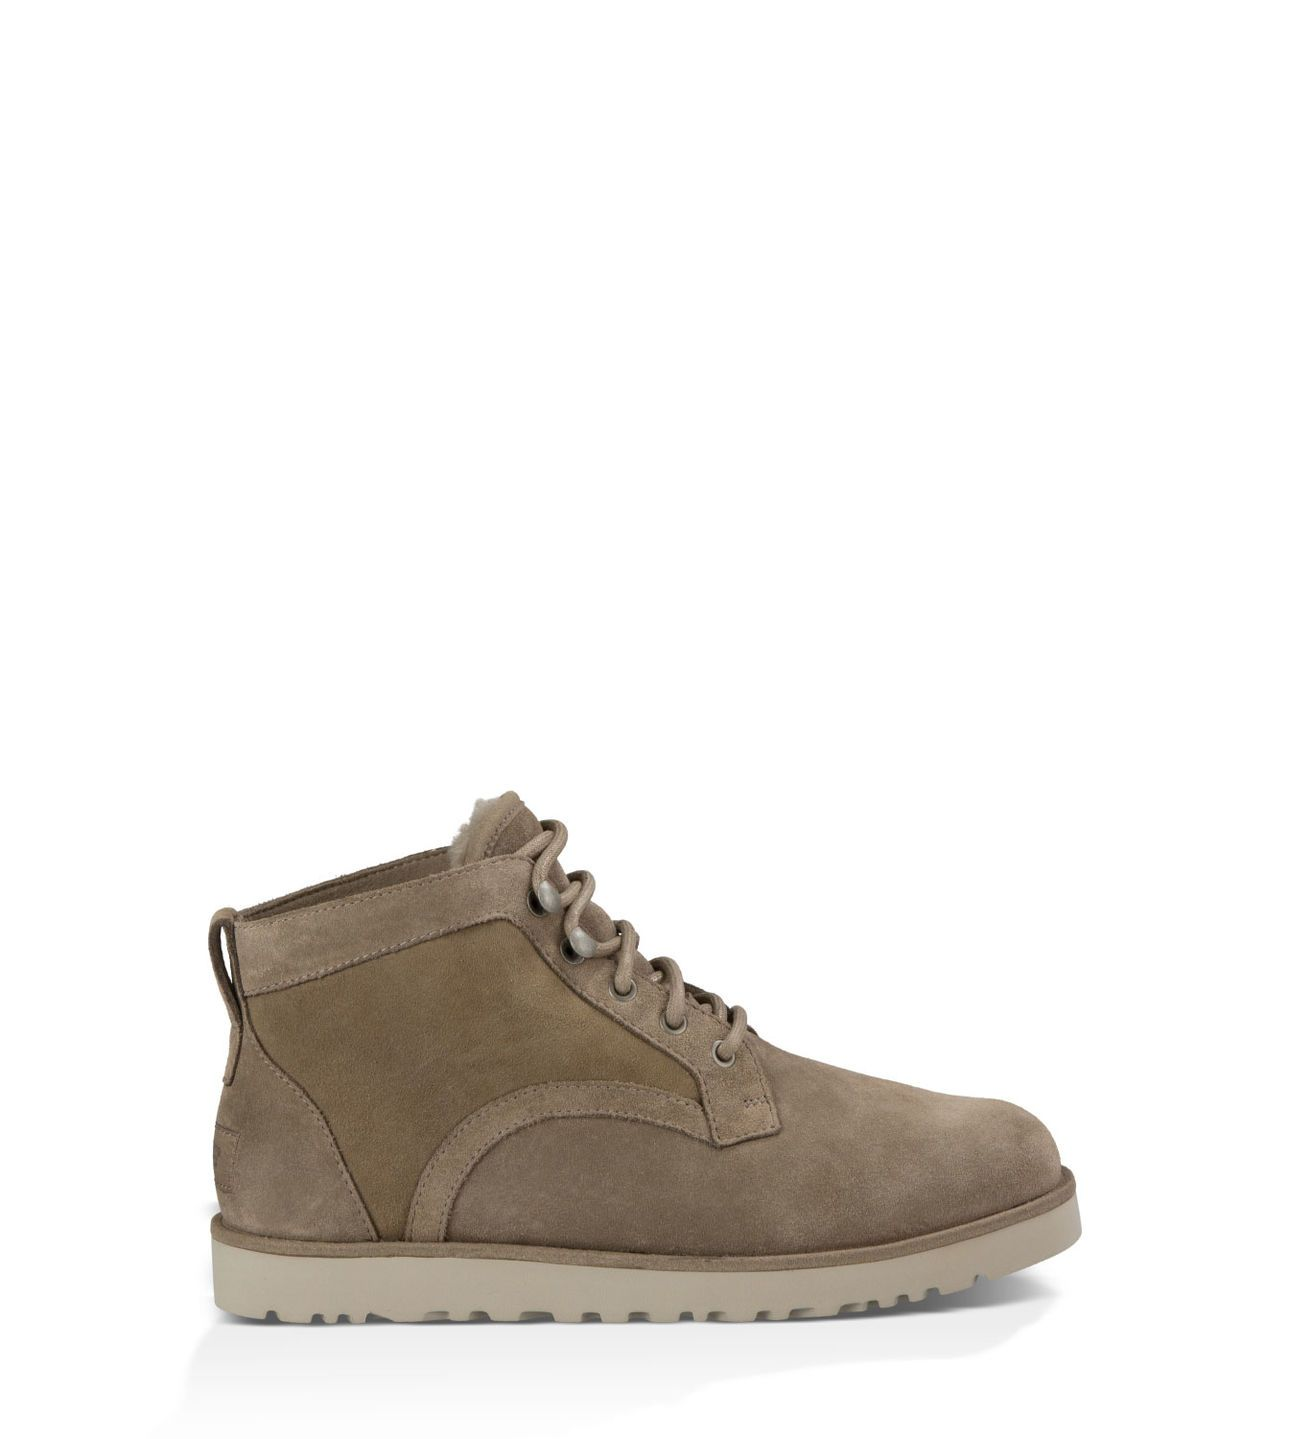 shop our collection of womens boots including the bethany